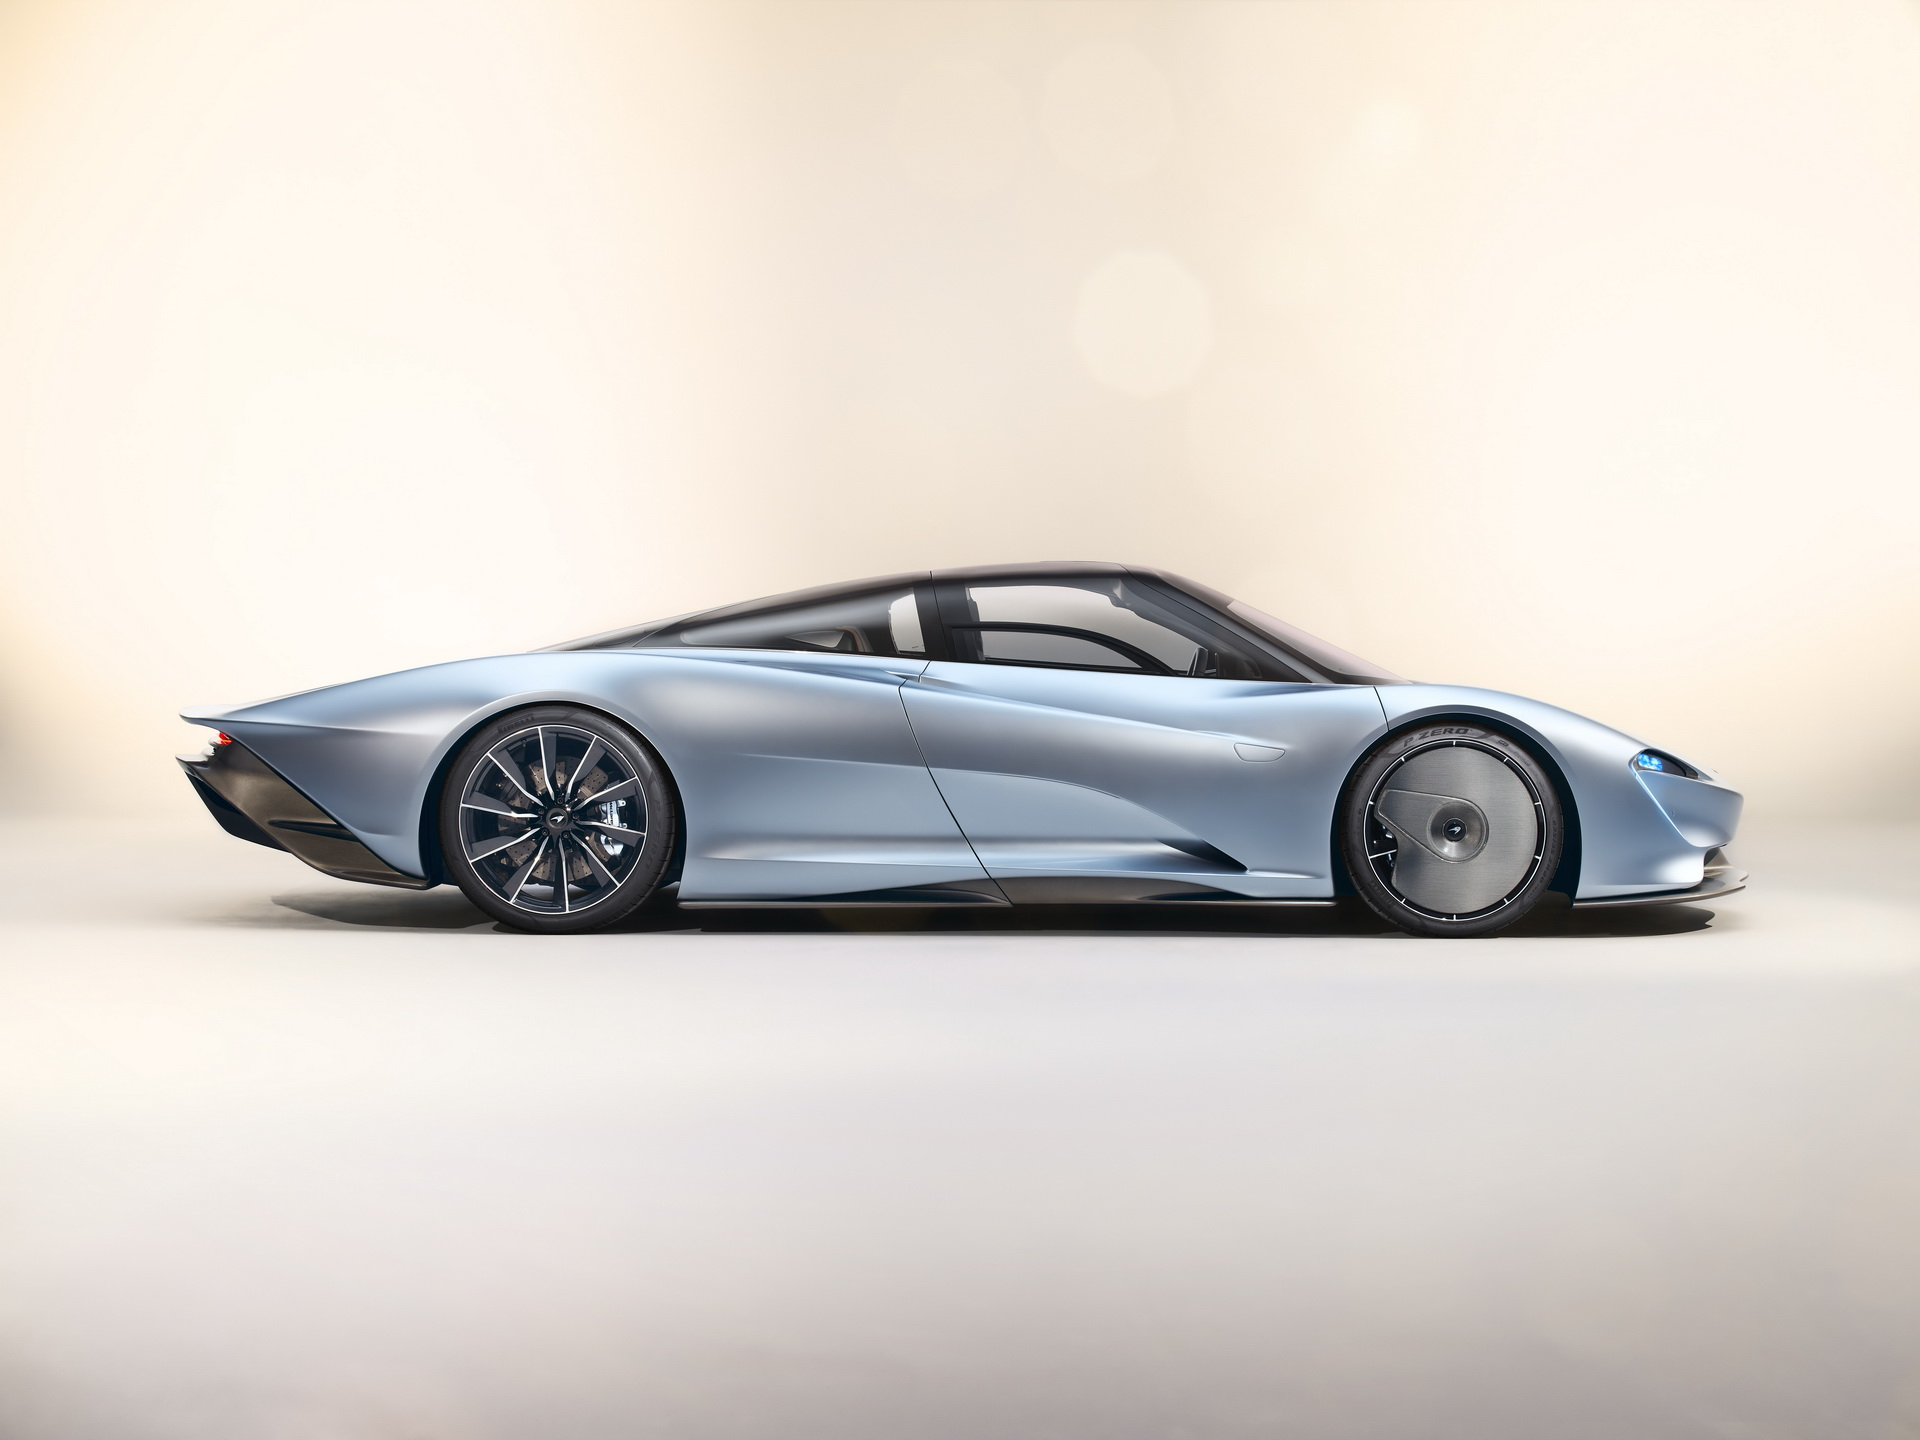 McLaren Speedtail revealed, fastest McLaren ever